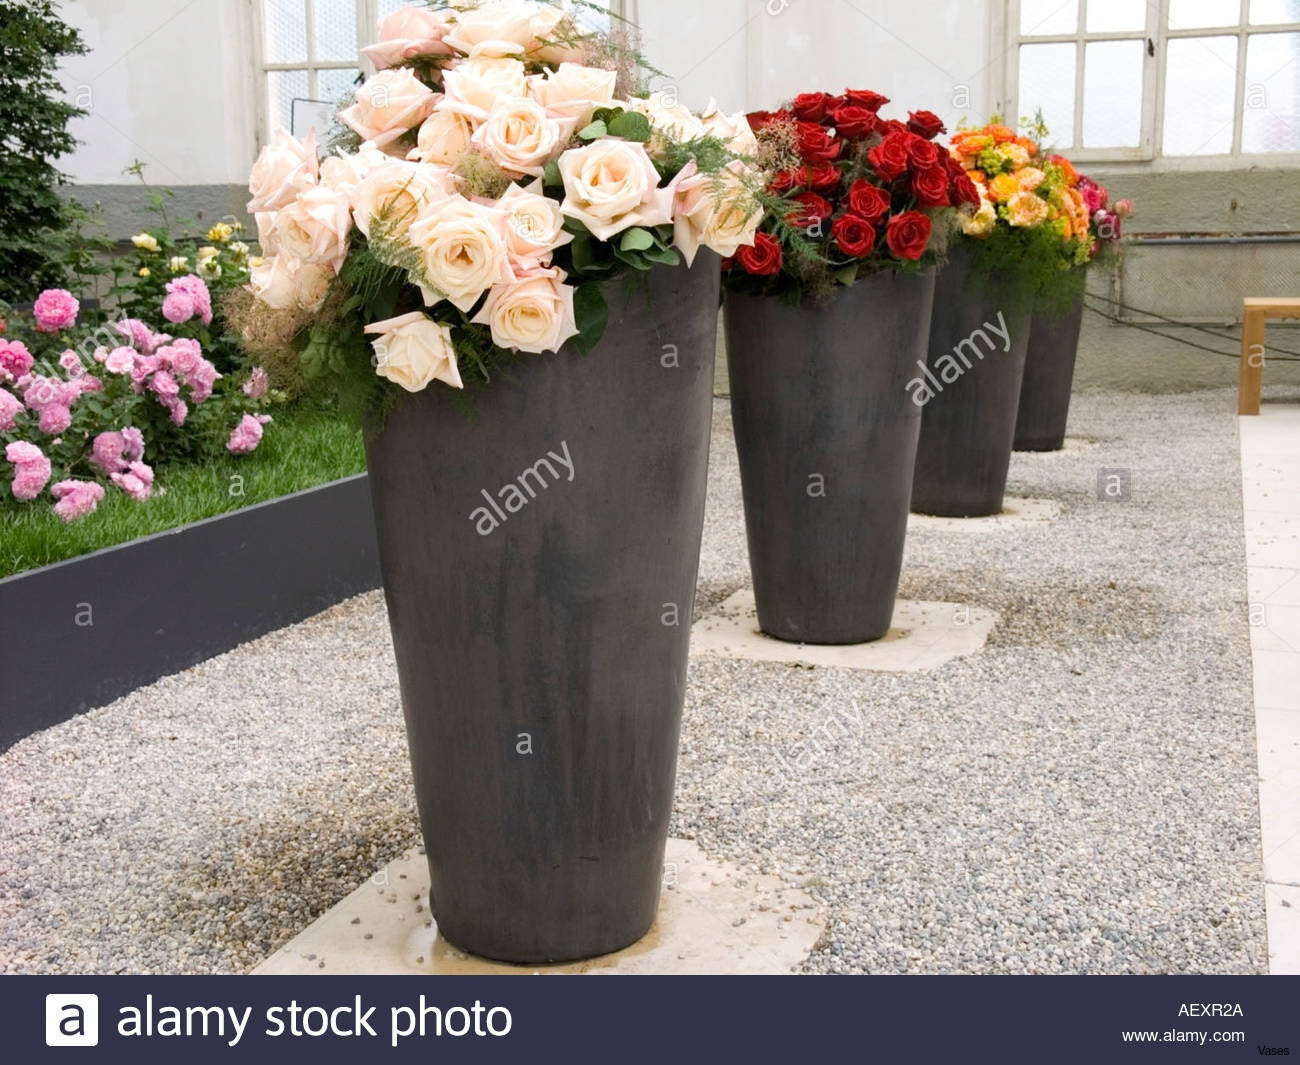 luxury vases for sale of big glass vase stock buy used wedding decor awesome articles with intended for big glass vase stock buy used wedding decor awesome articles with flower vases for sale